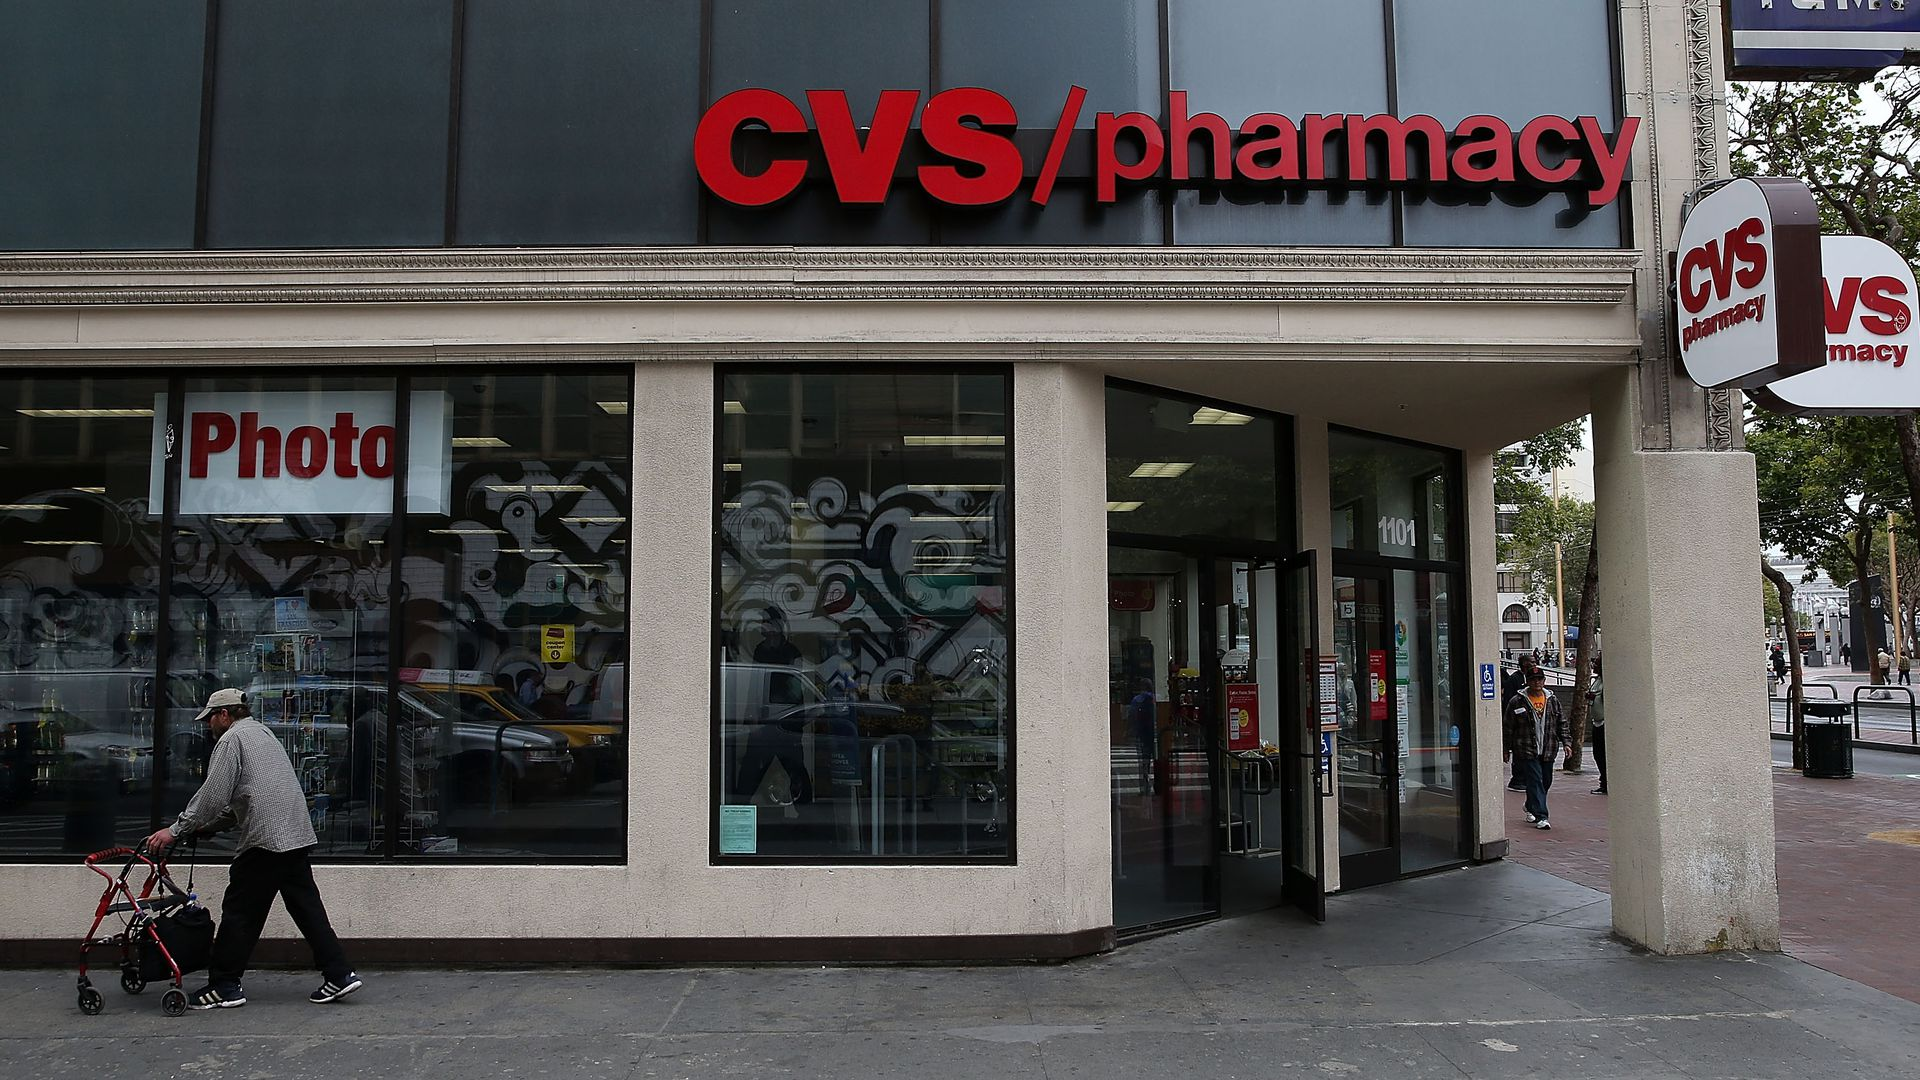 A pedestrian walks by a CVS store.